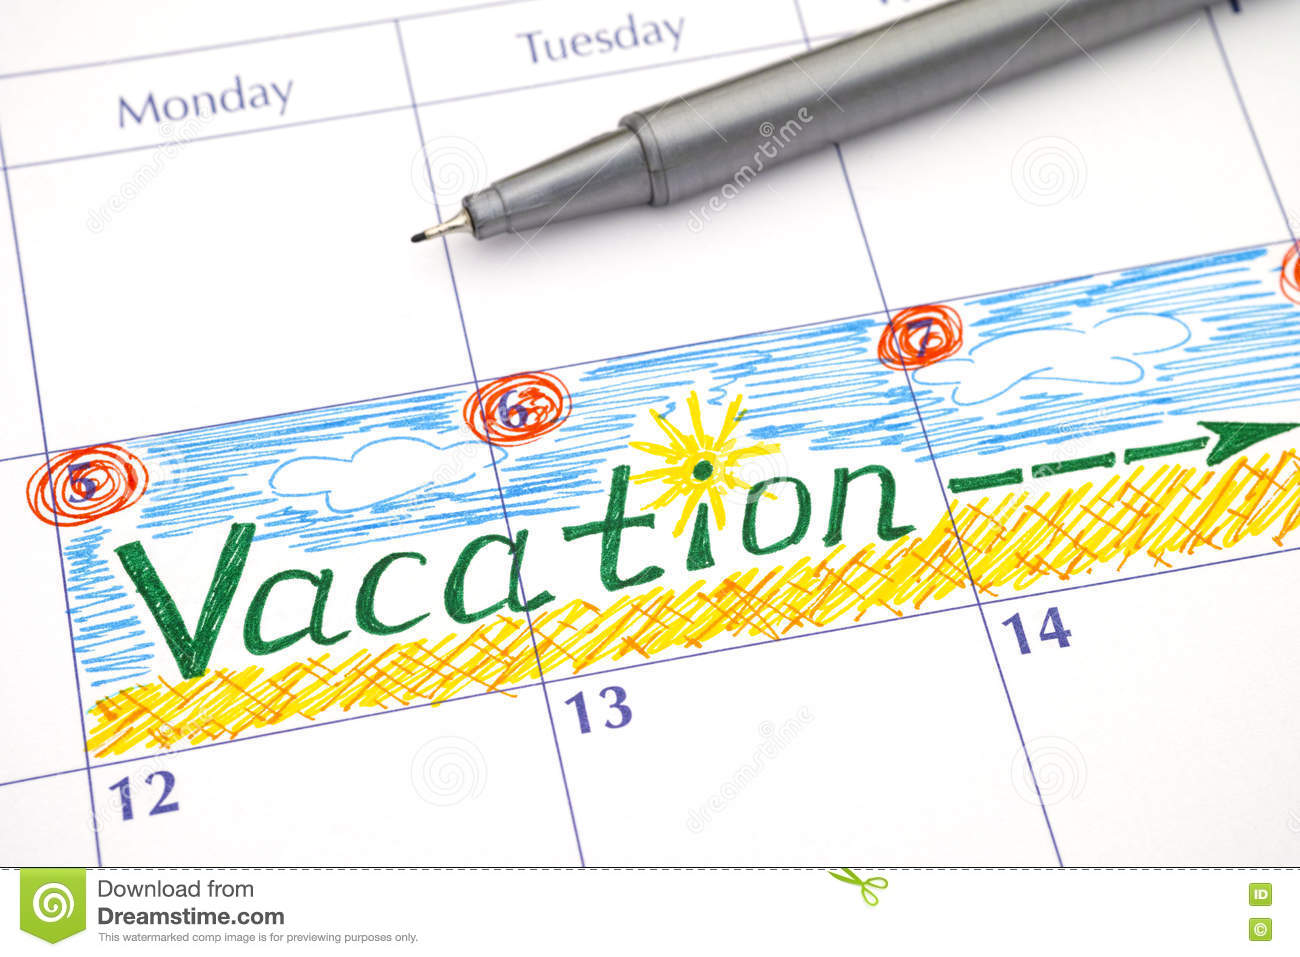 Reminder Vacation In Calendar Stock Photo Image 72506694